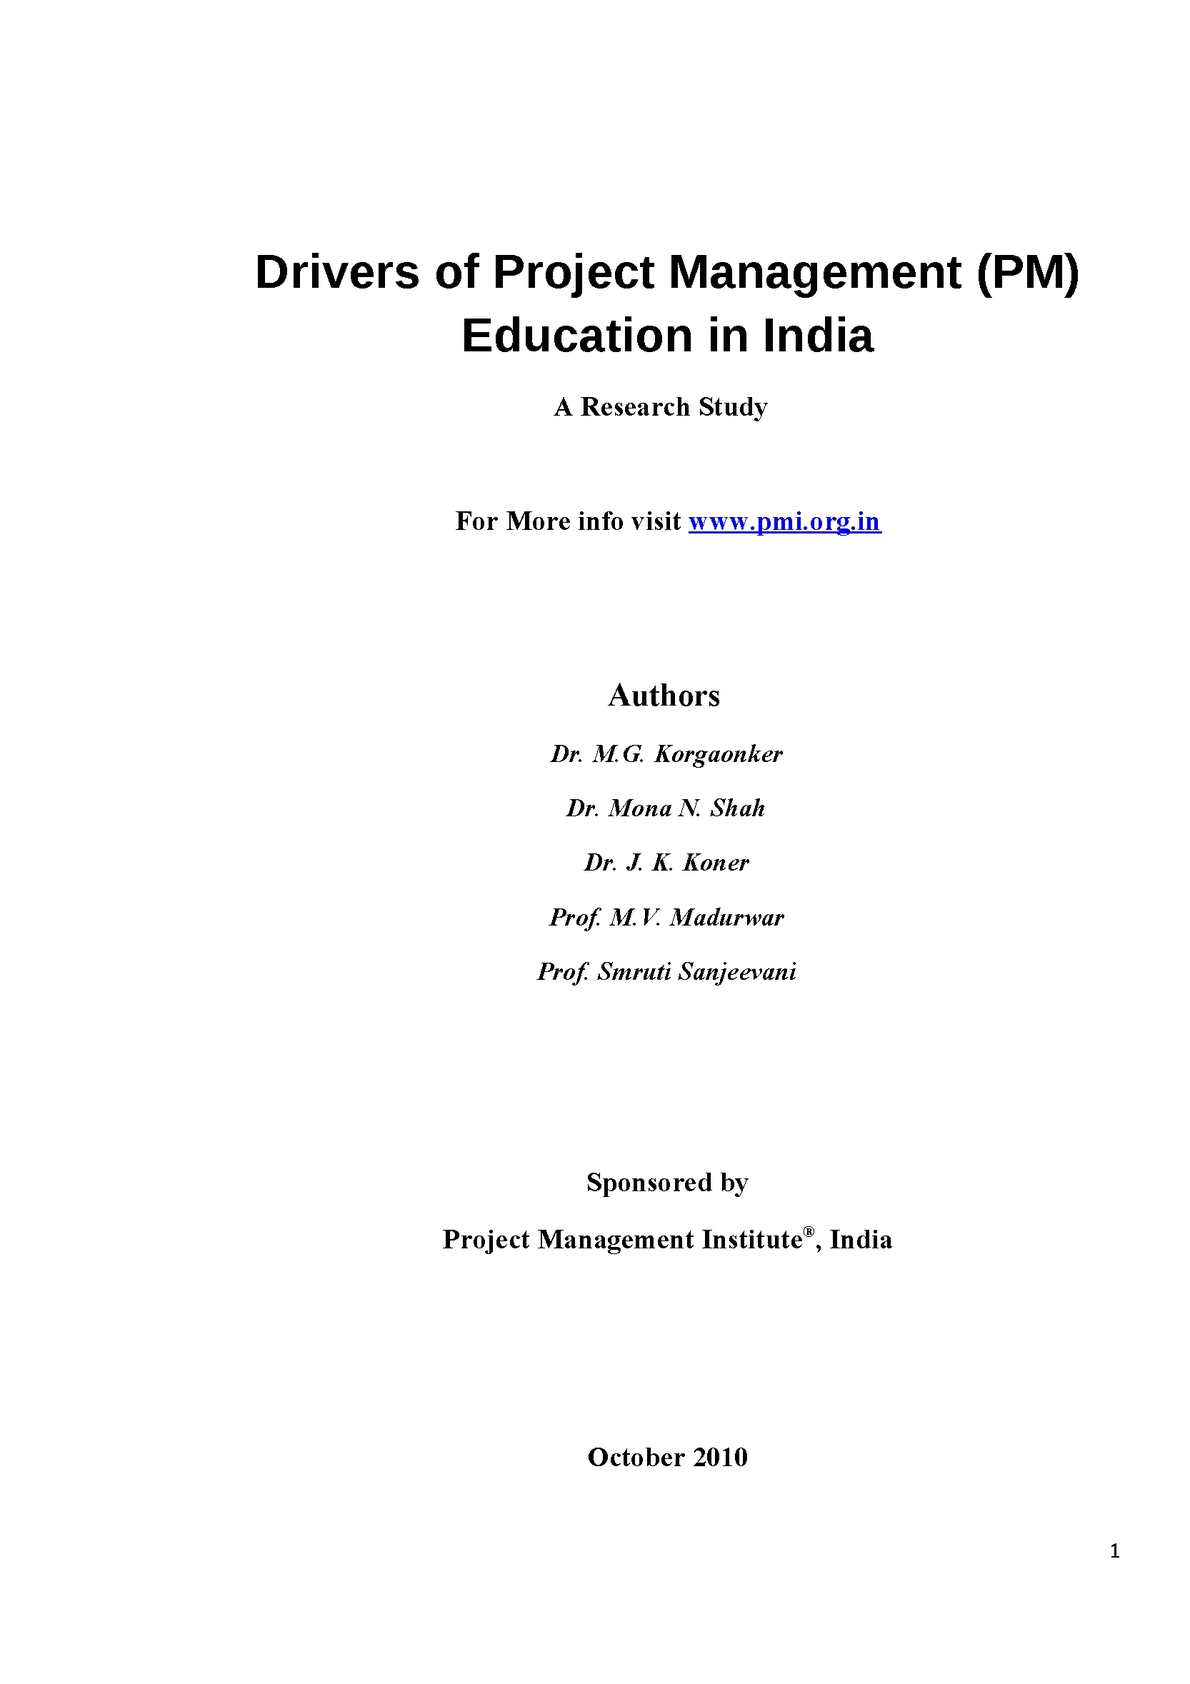 Calaméo - Drivers of Project Management (PM) Education in India - A